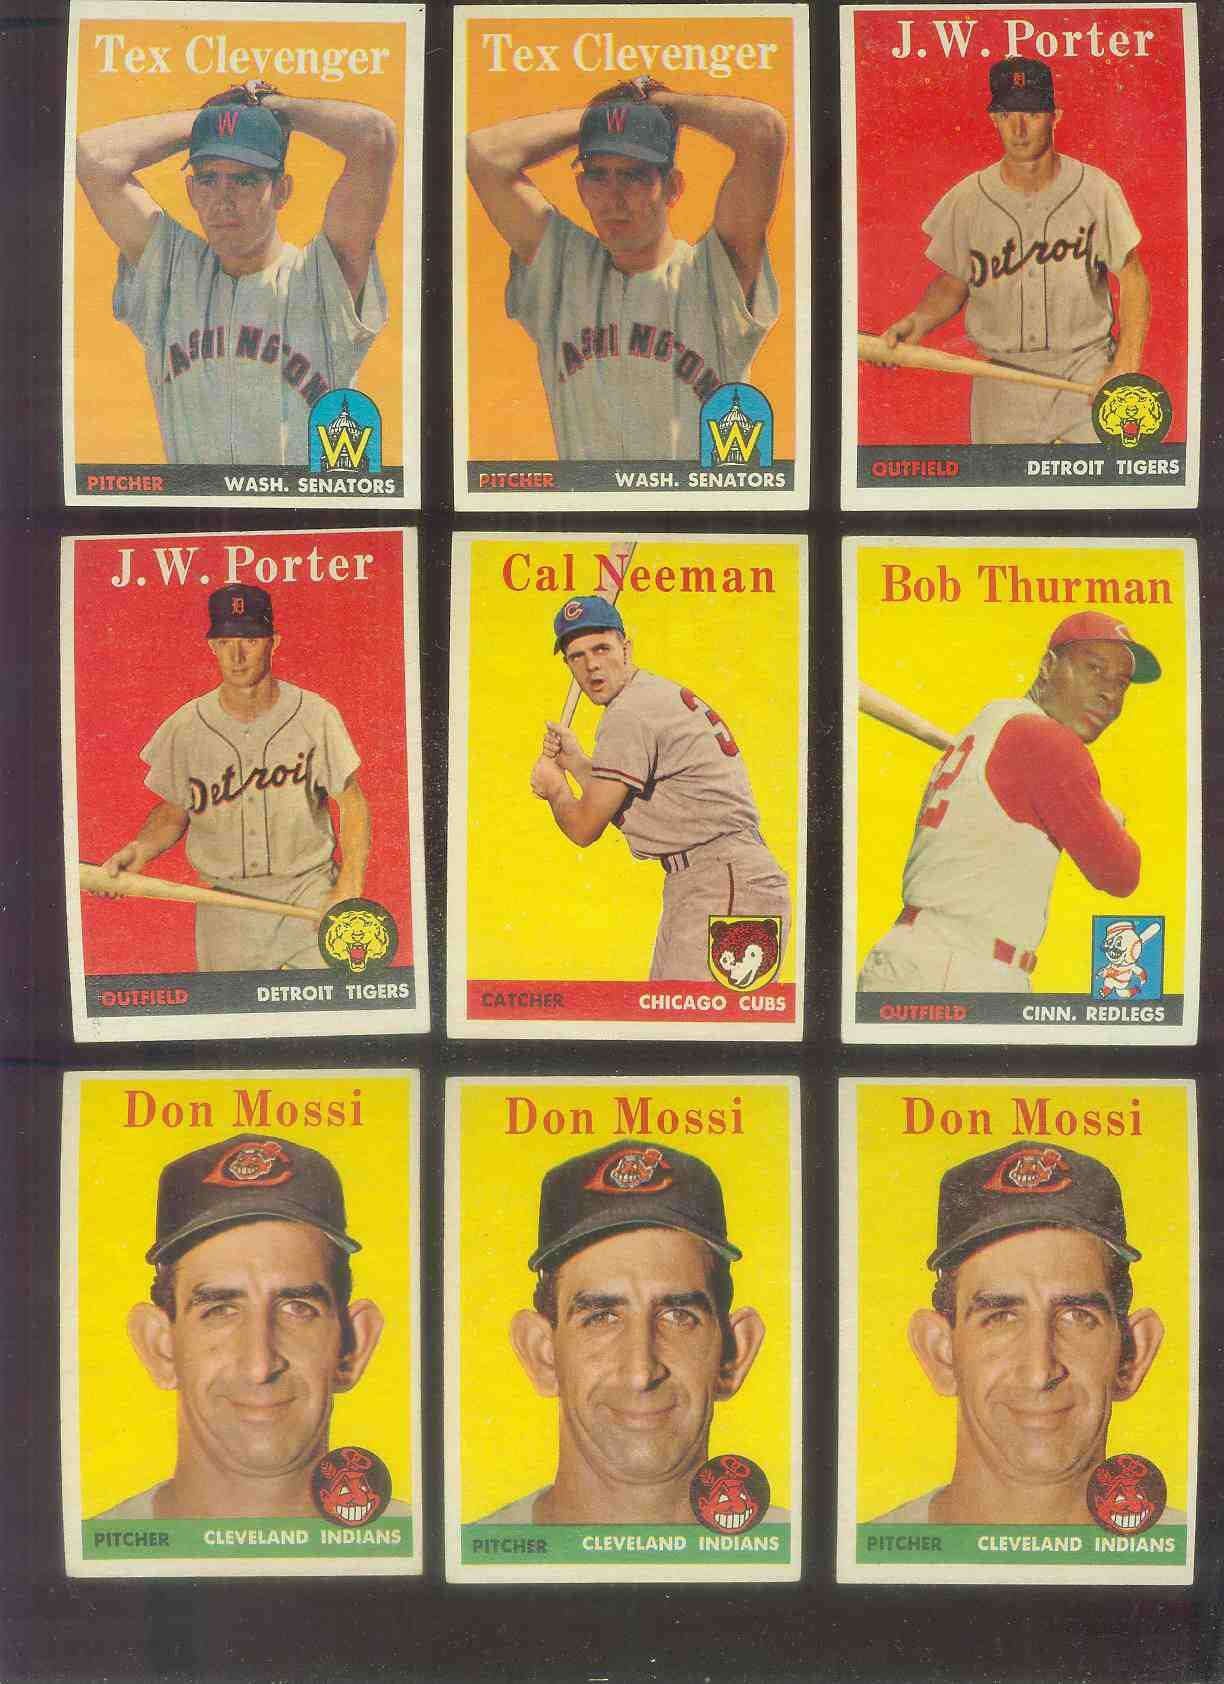 1958 Topps #.31 Tex Clevenger (Senators) Baseball cards value